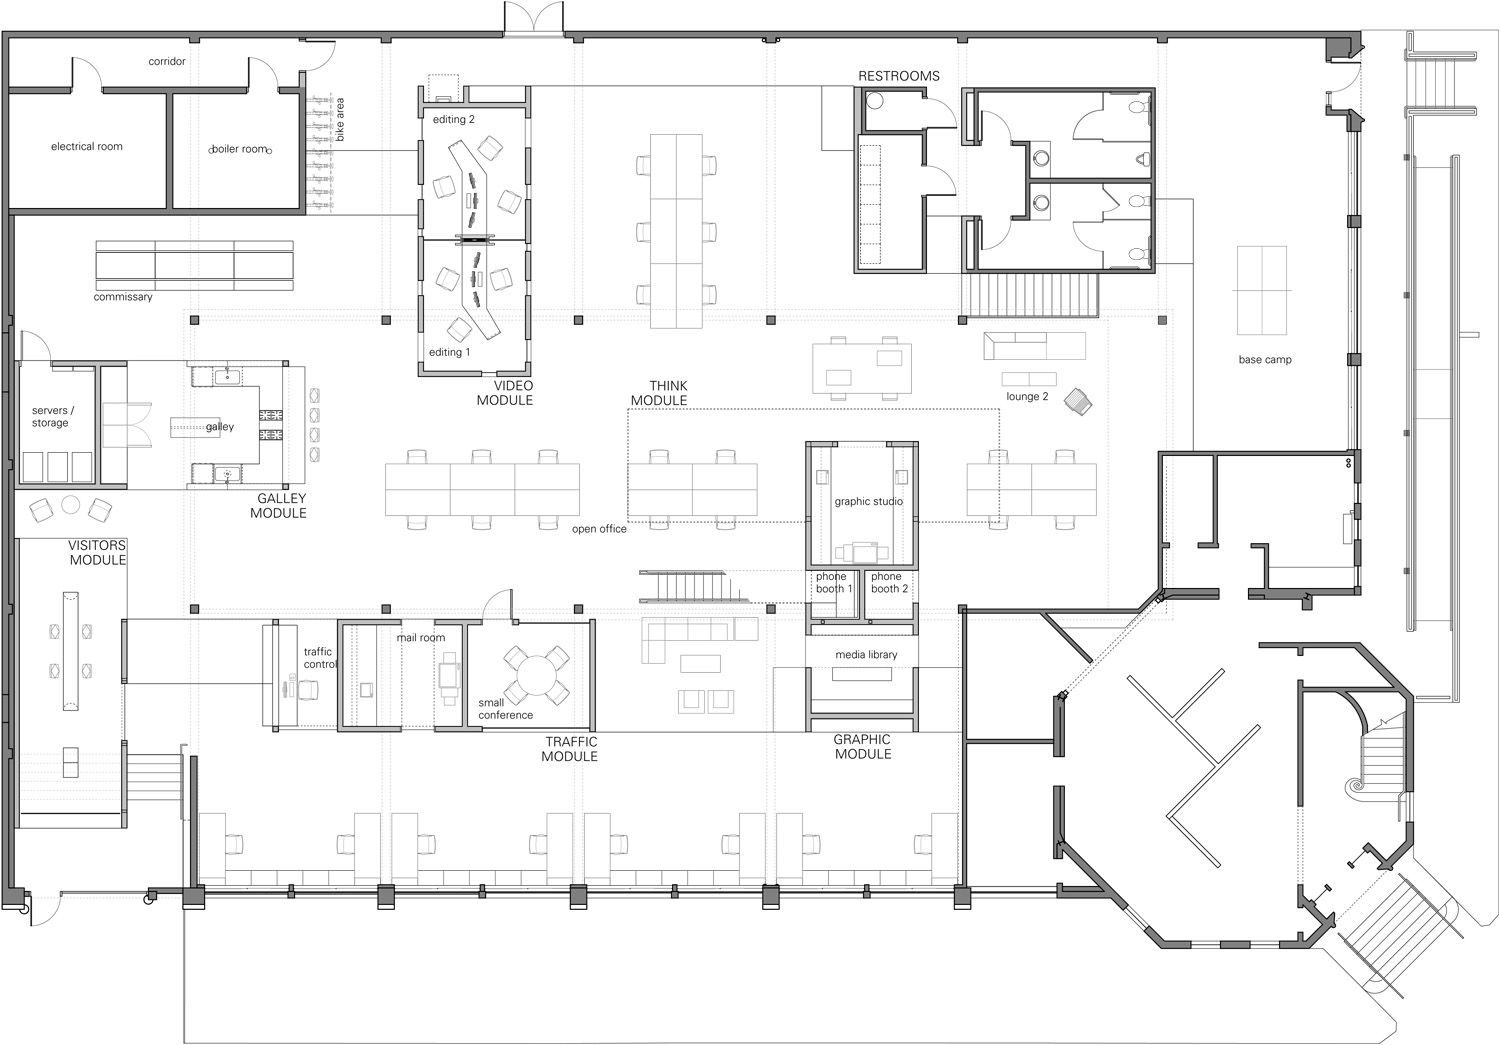 North skylab architecture office floor plan office for Office layout design